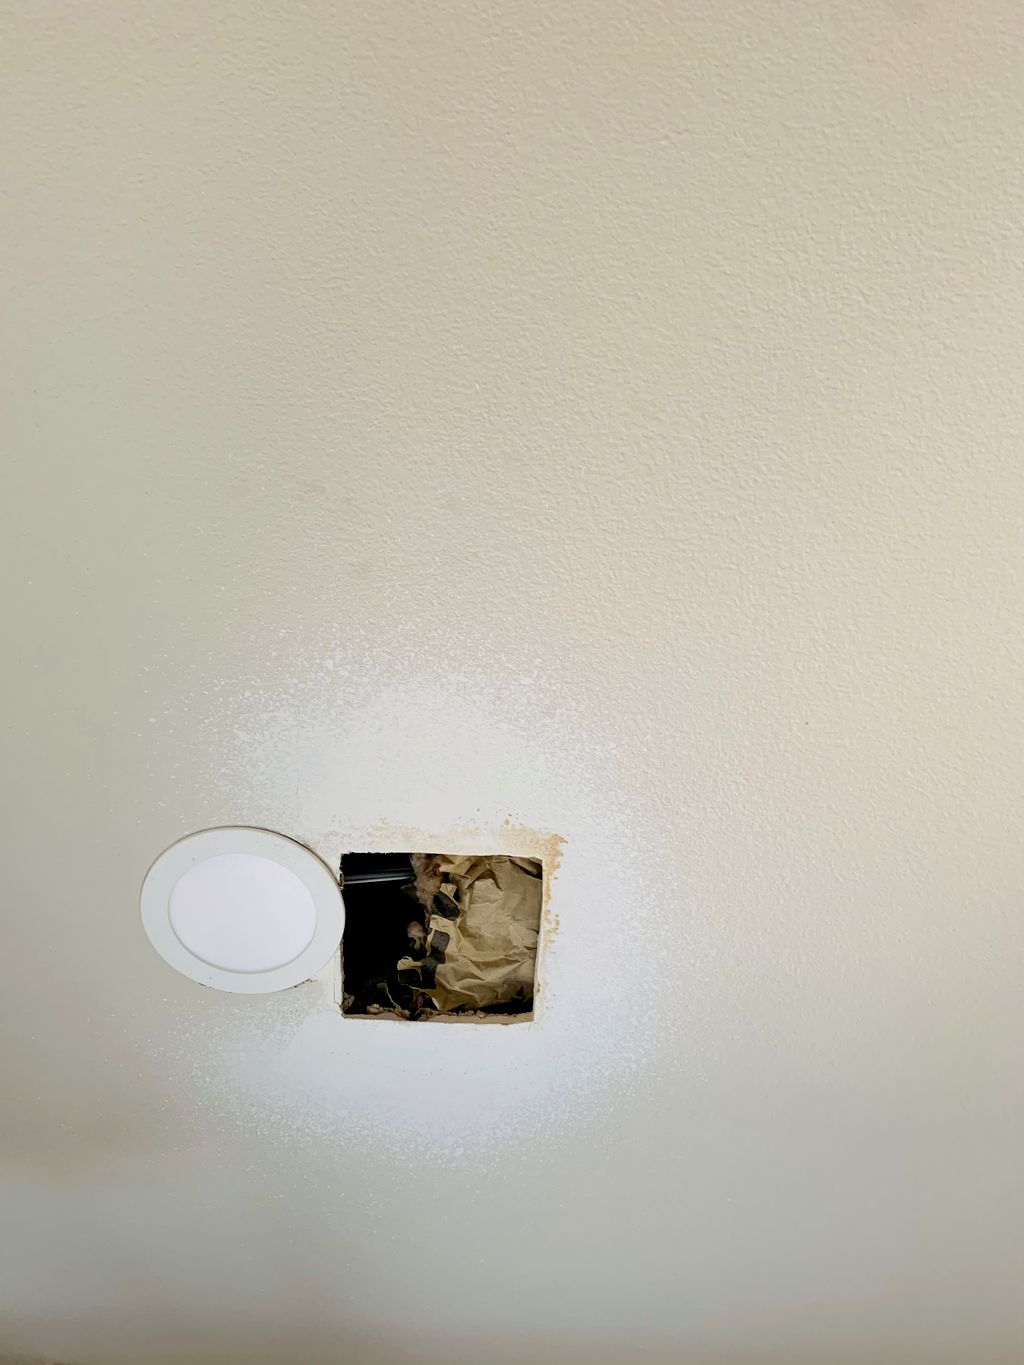 drywall repair, spot texture, and paint ceiling